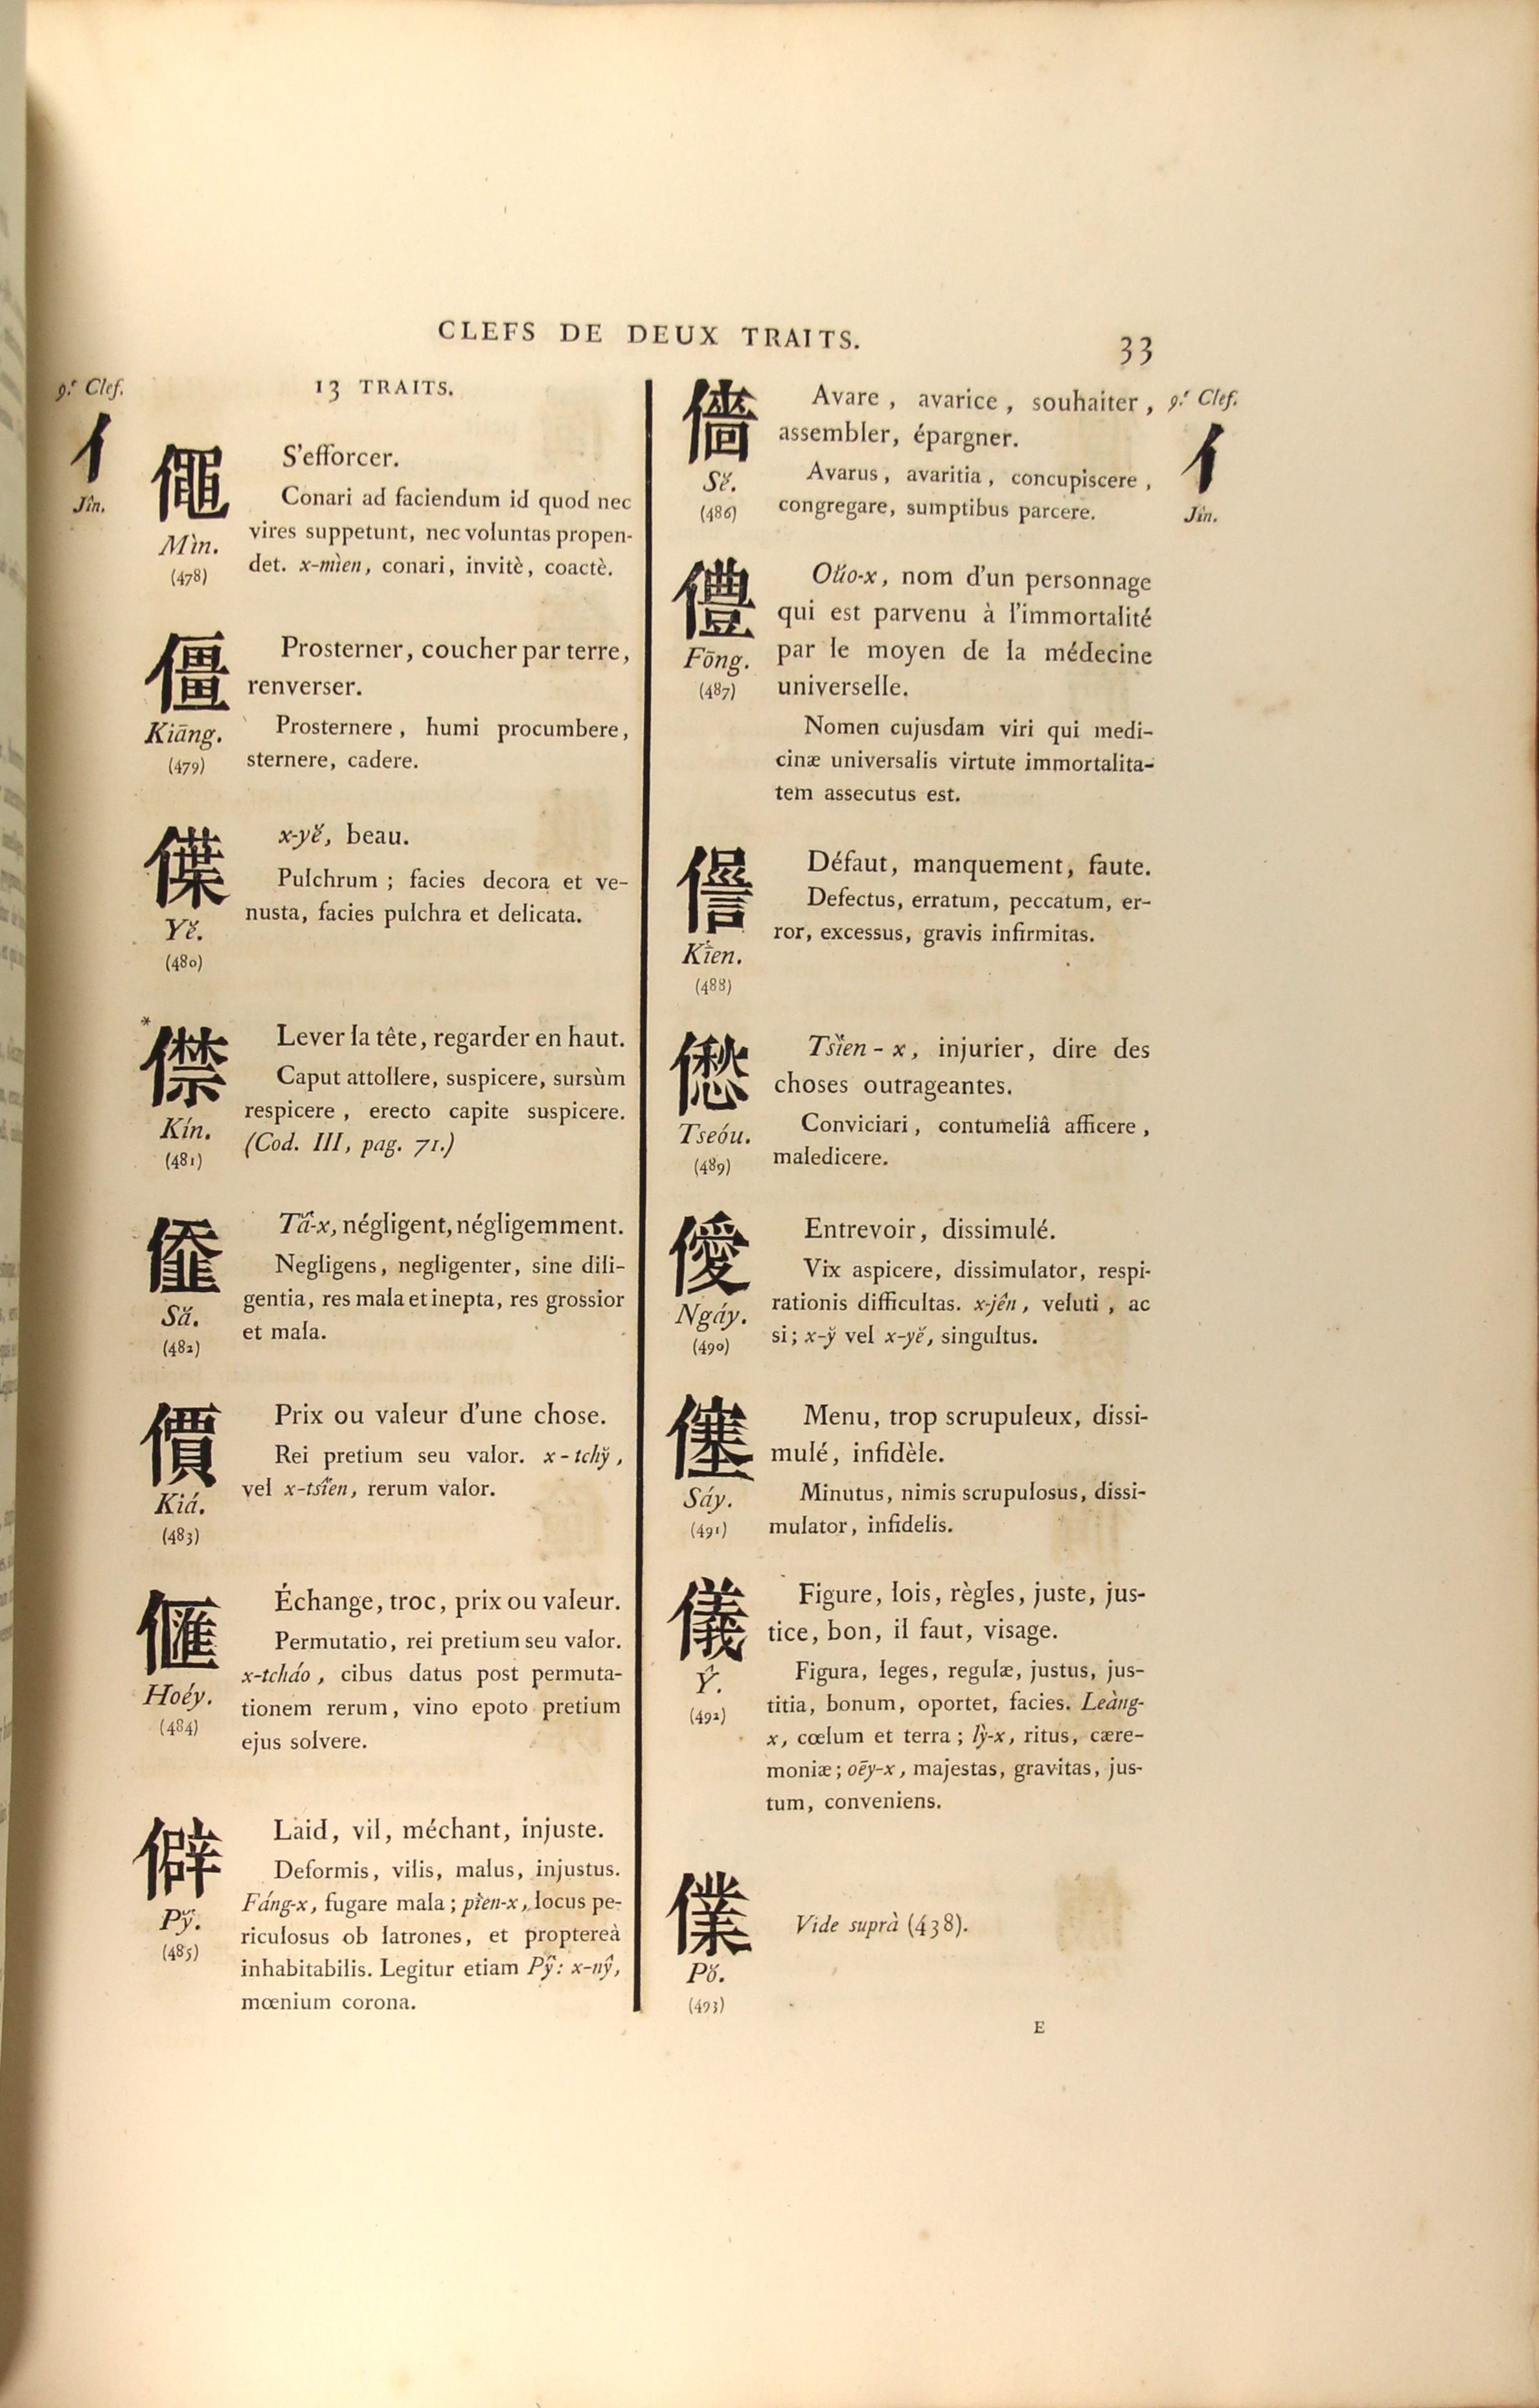 dictionnaire-chinois (4).JPG